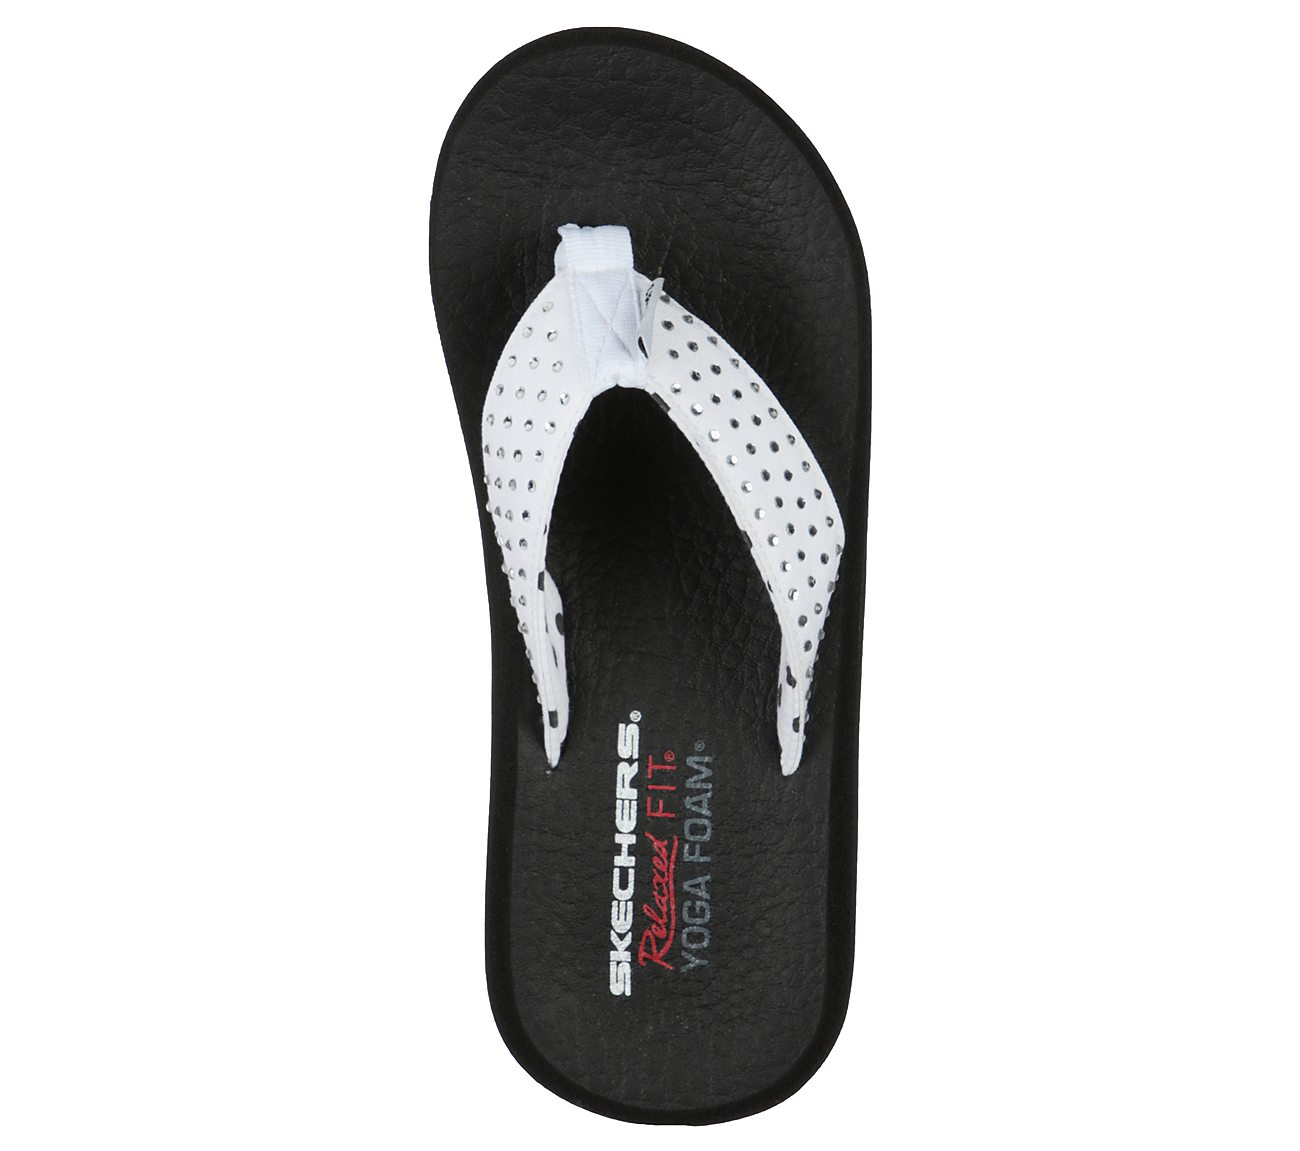 e058686fcc5b Buy SKECHERS Asana - New Age Comfort Sandals Shoes only  50.00